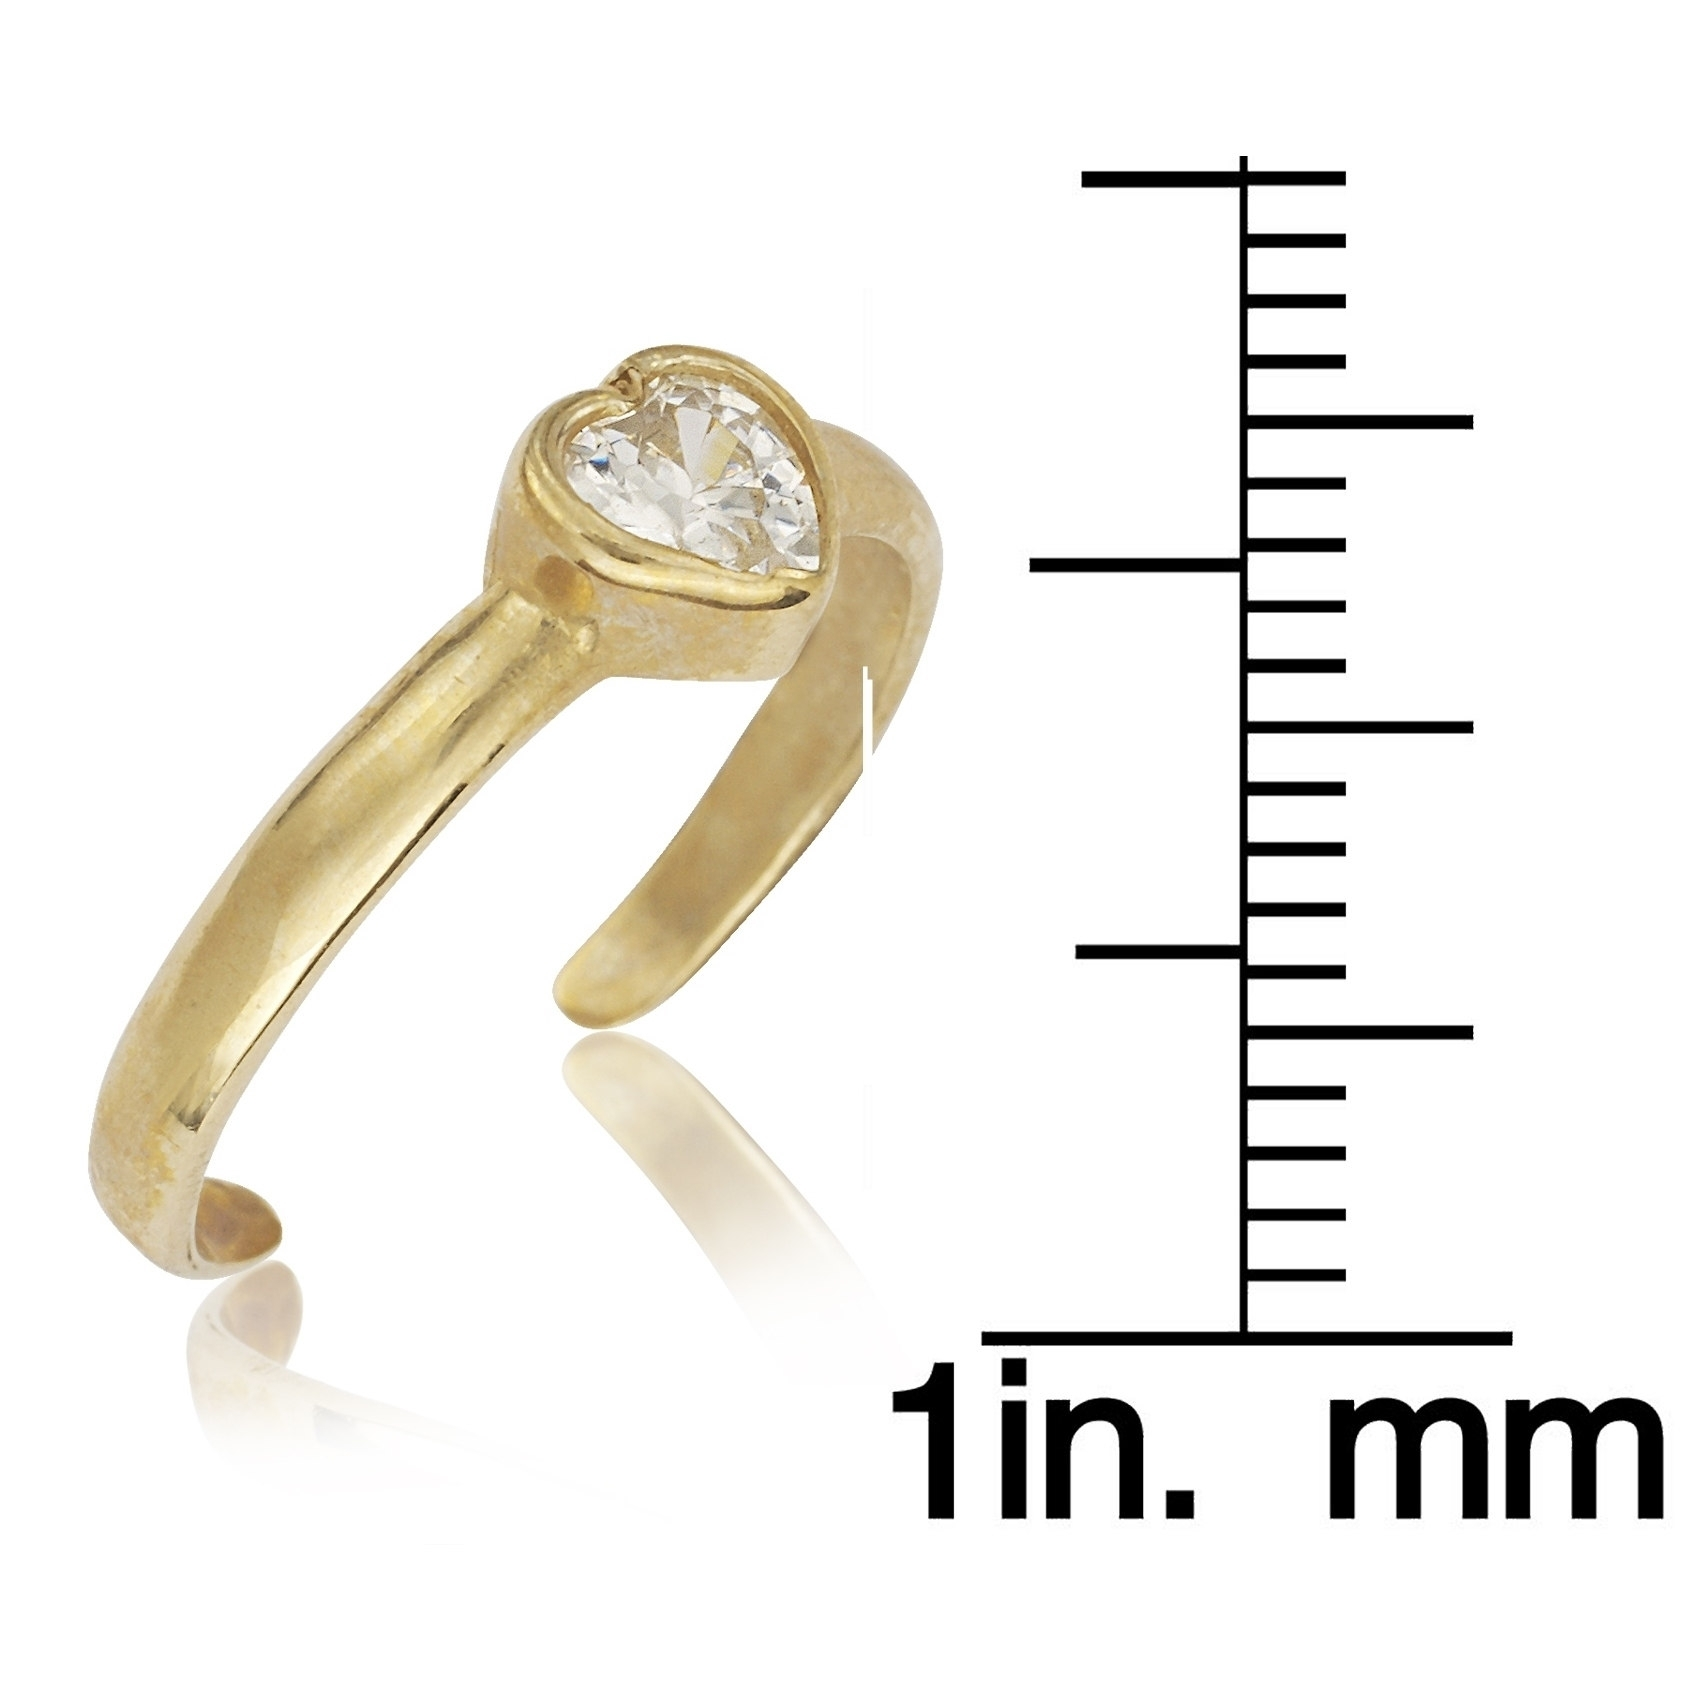 14K Yellow Or White Gold Adjustable Heart Shaped Cubic Zirconia Regarding 2017 White Gold Diamond Toe Rings (View 6 of 15)